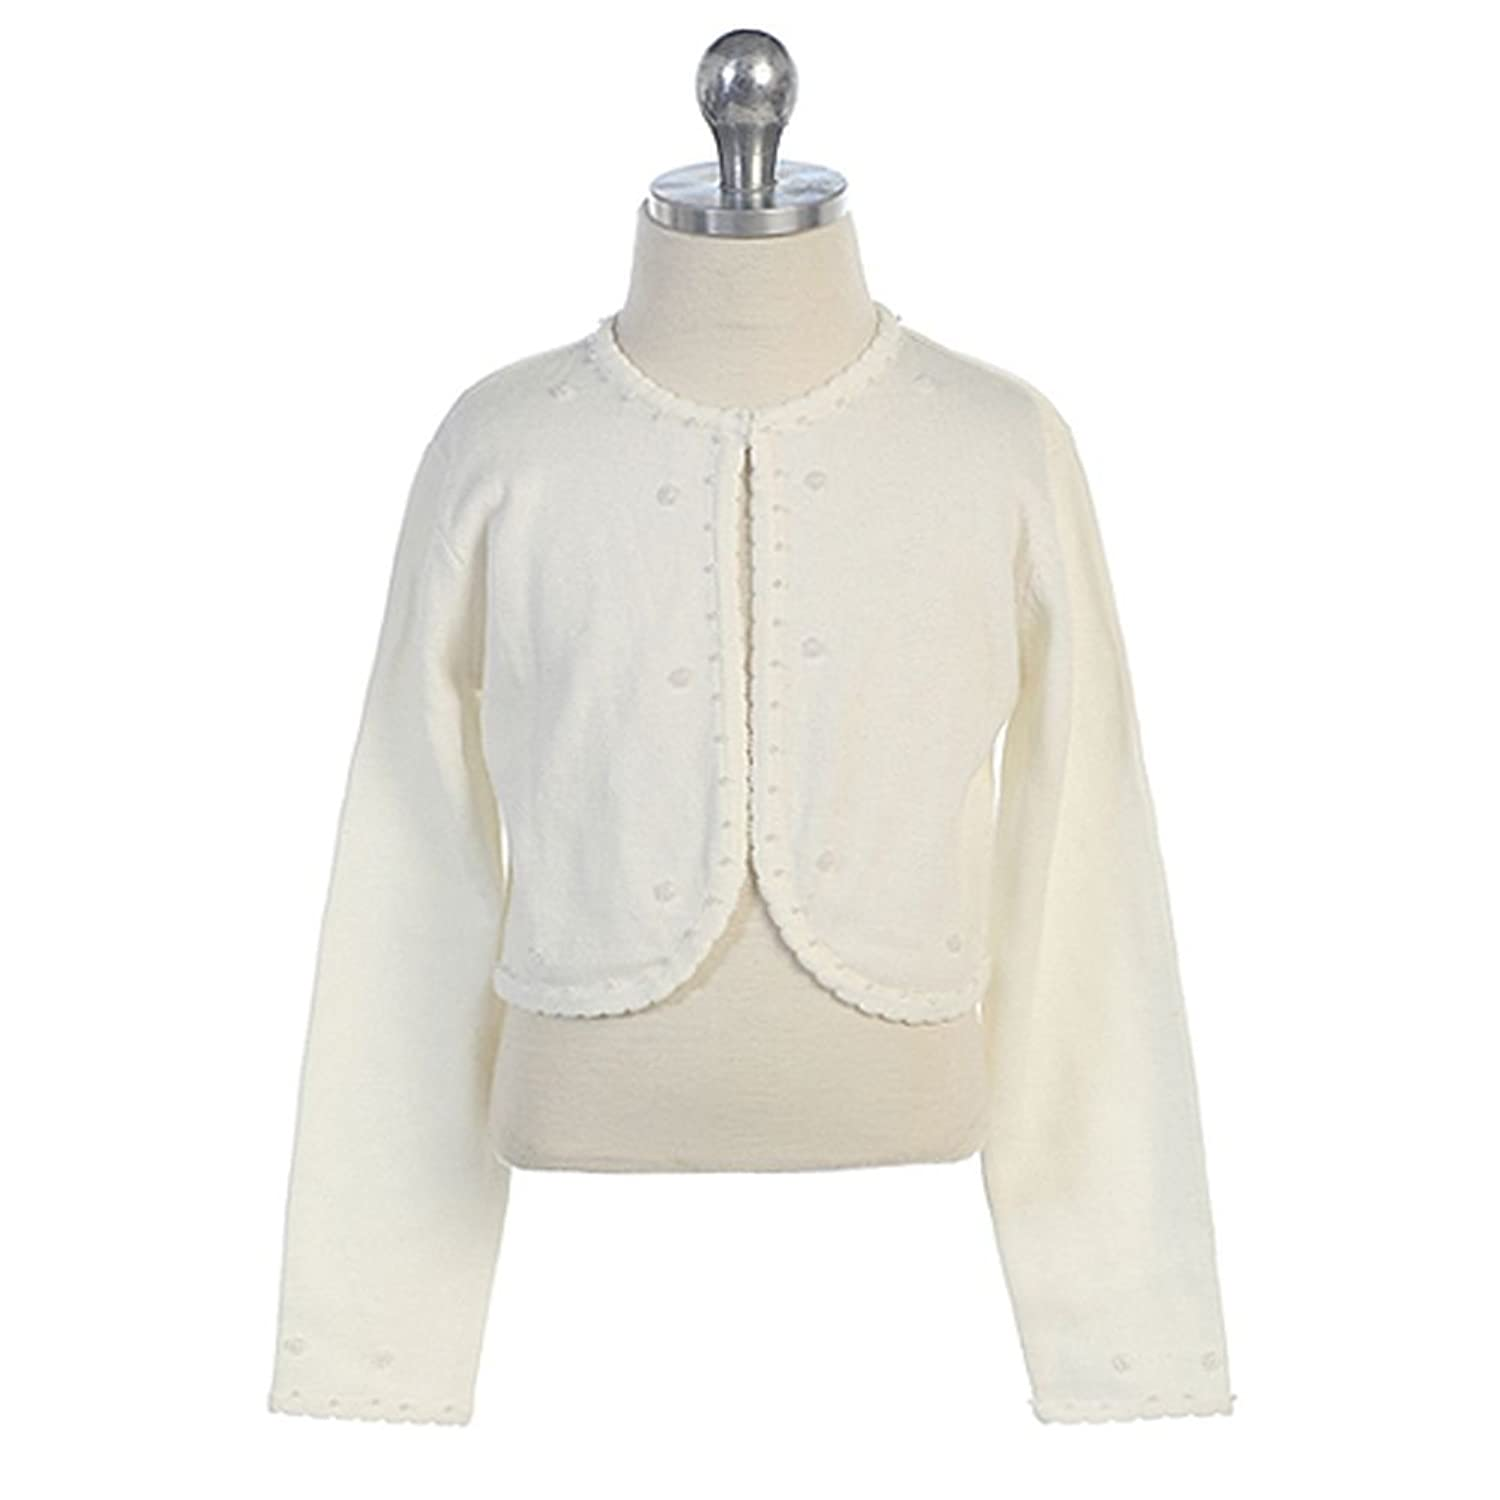 Amazon.com: Chic Baby Toddler Girls Ivory Beaded Bolero Shrug ...